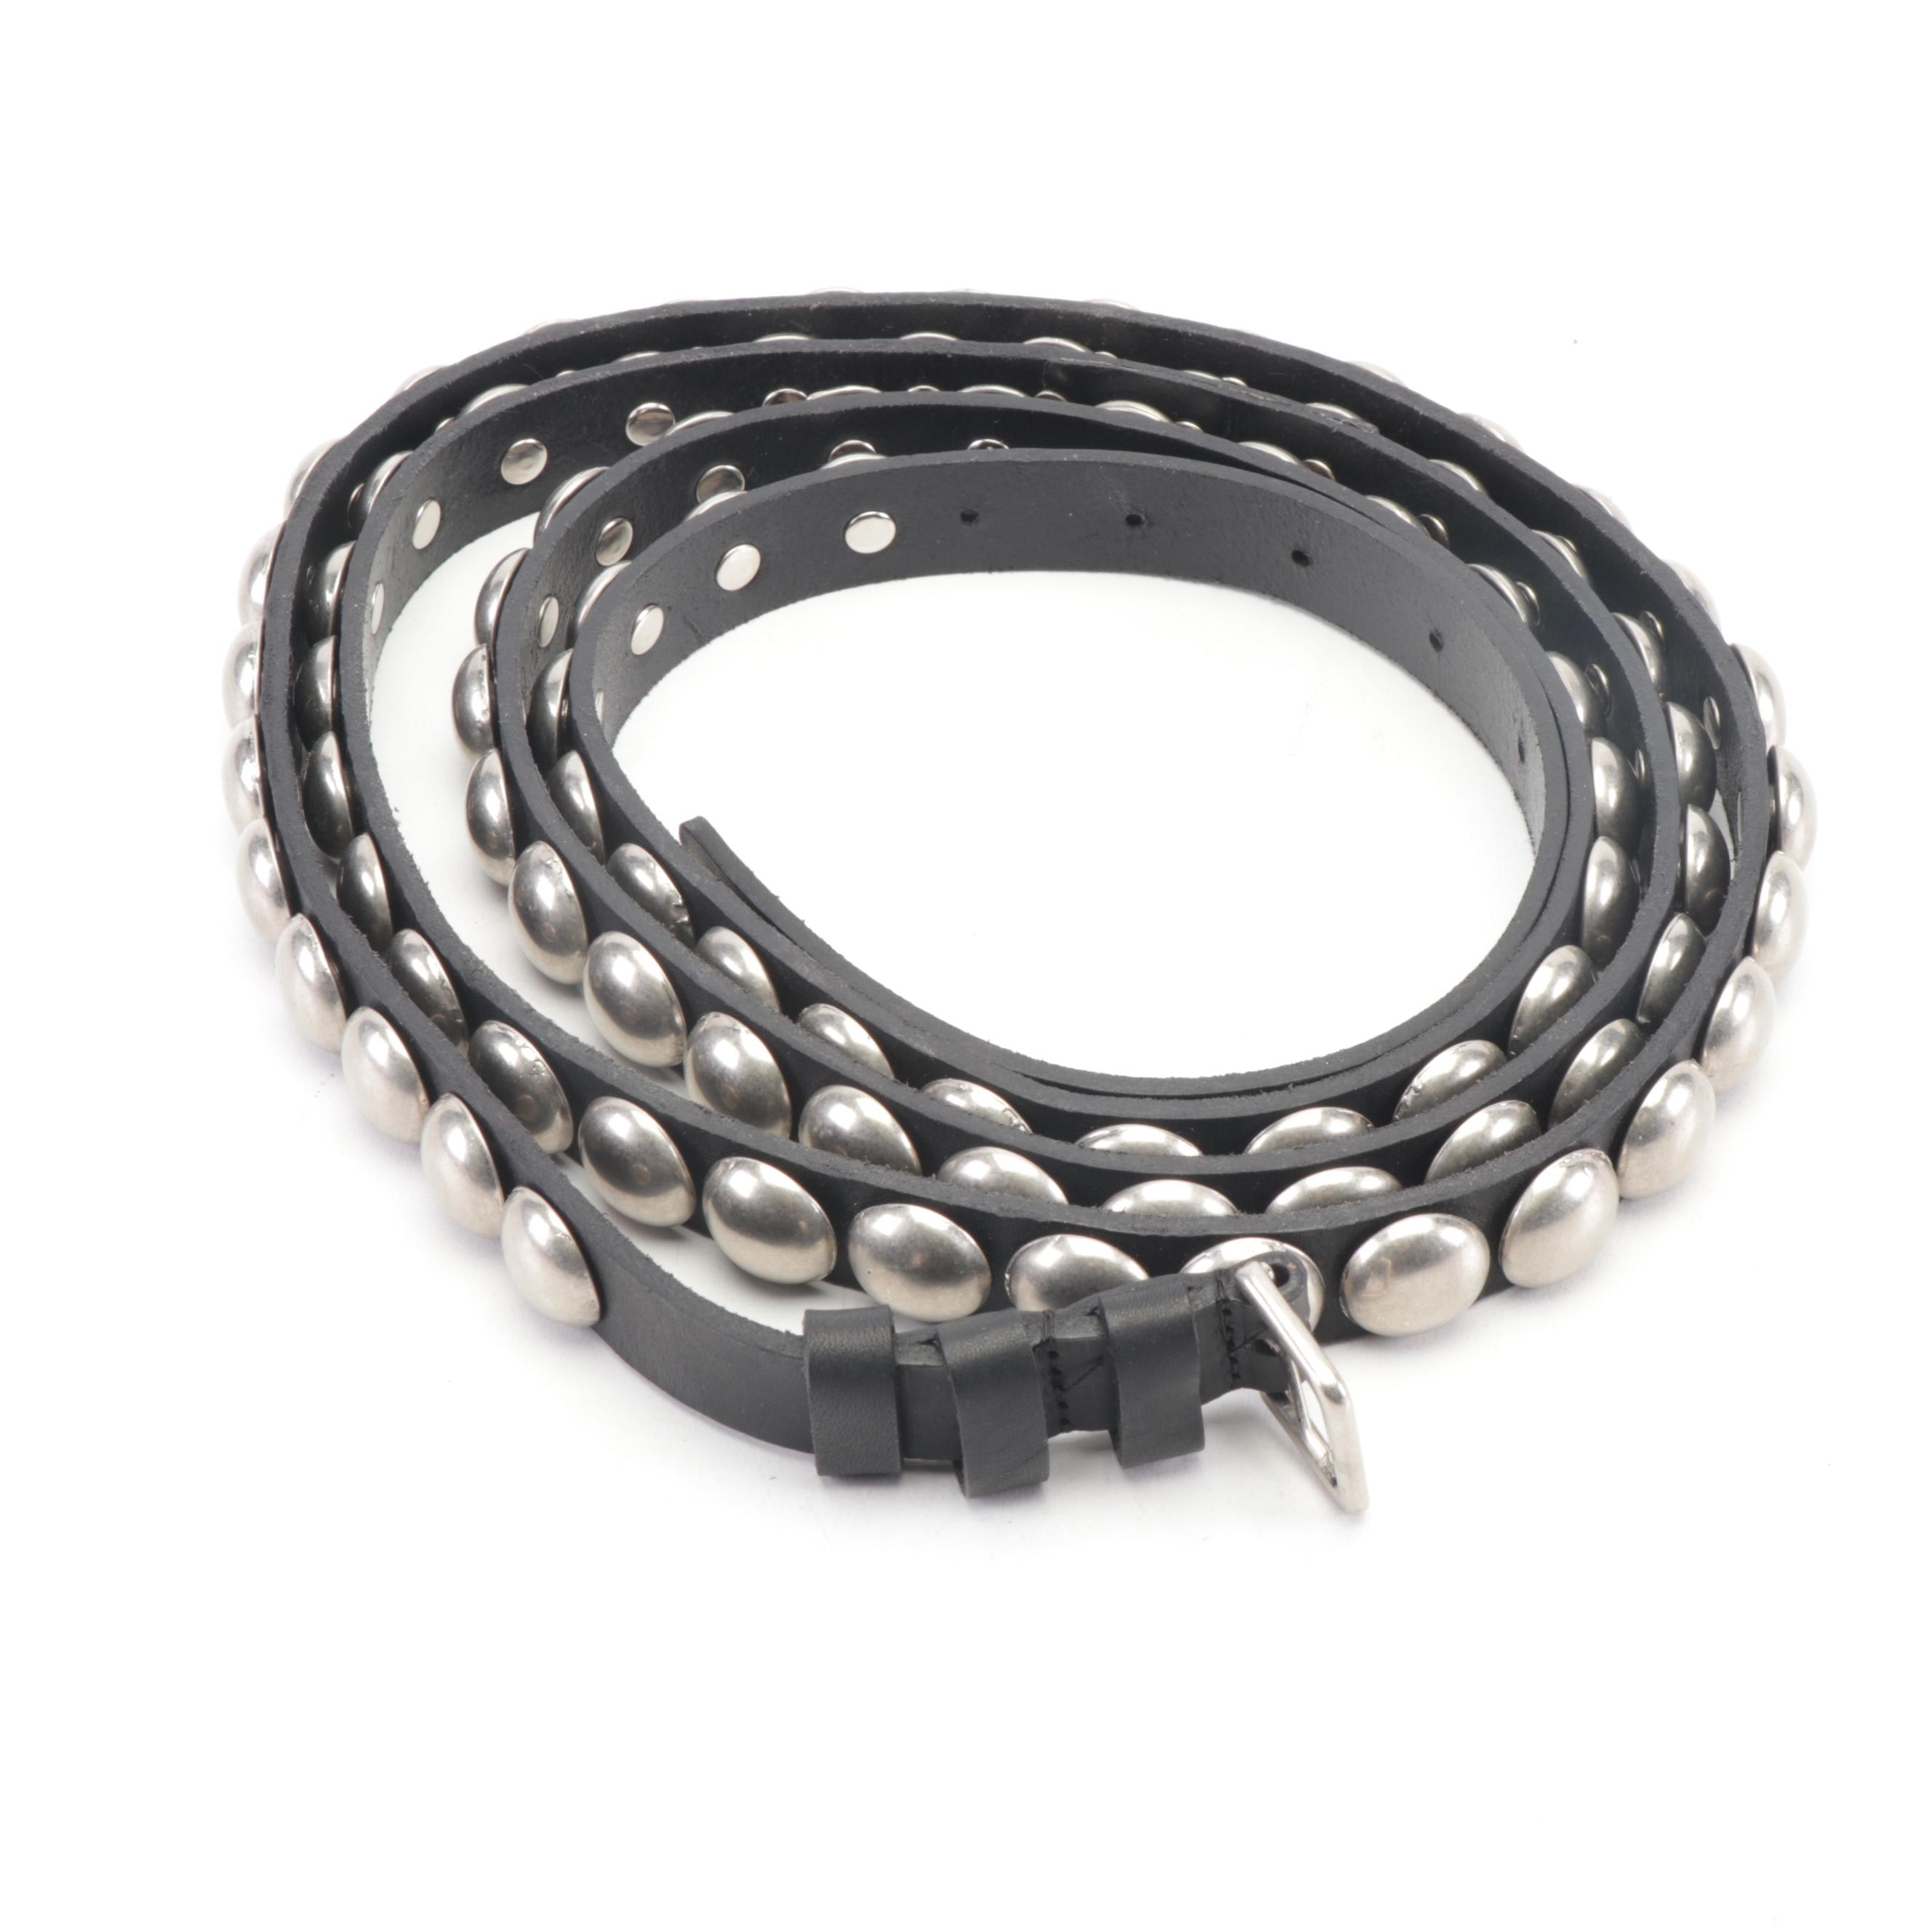 Ann Demeulemeester Studded Wrap Around Black Leather Belt, Made in Italy